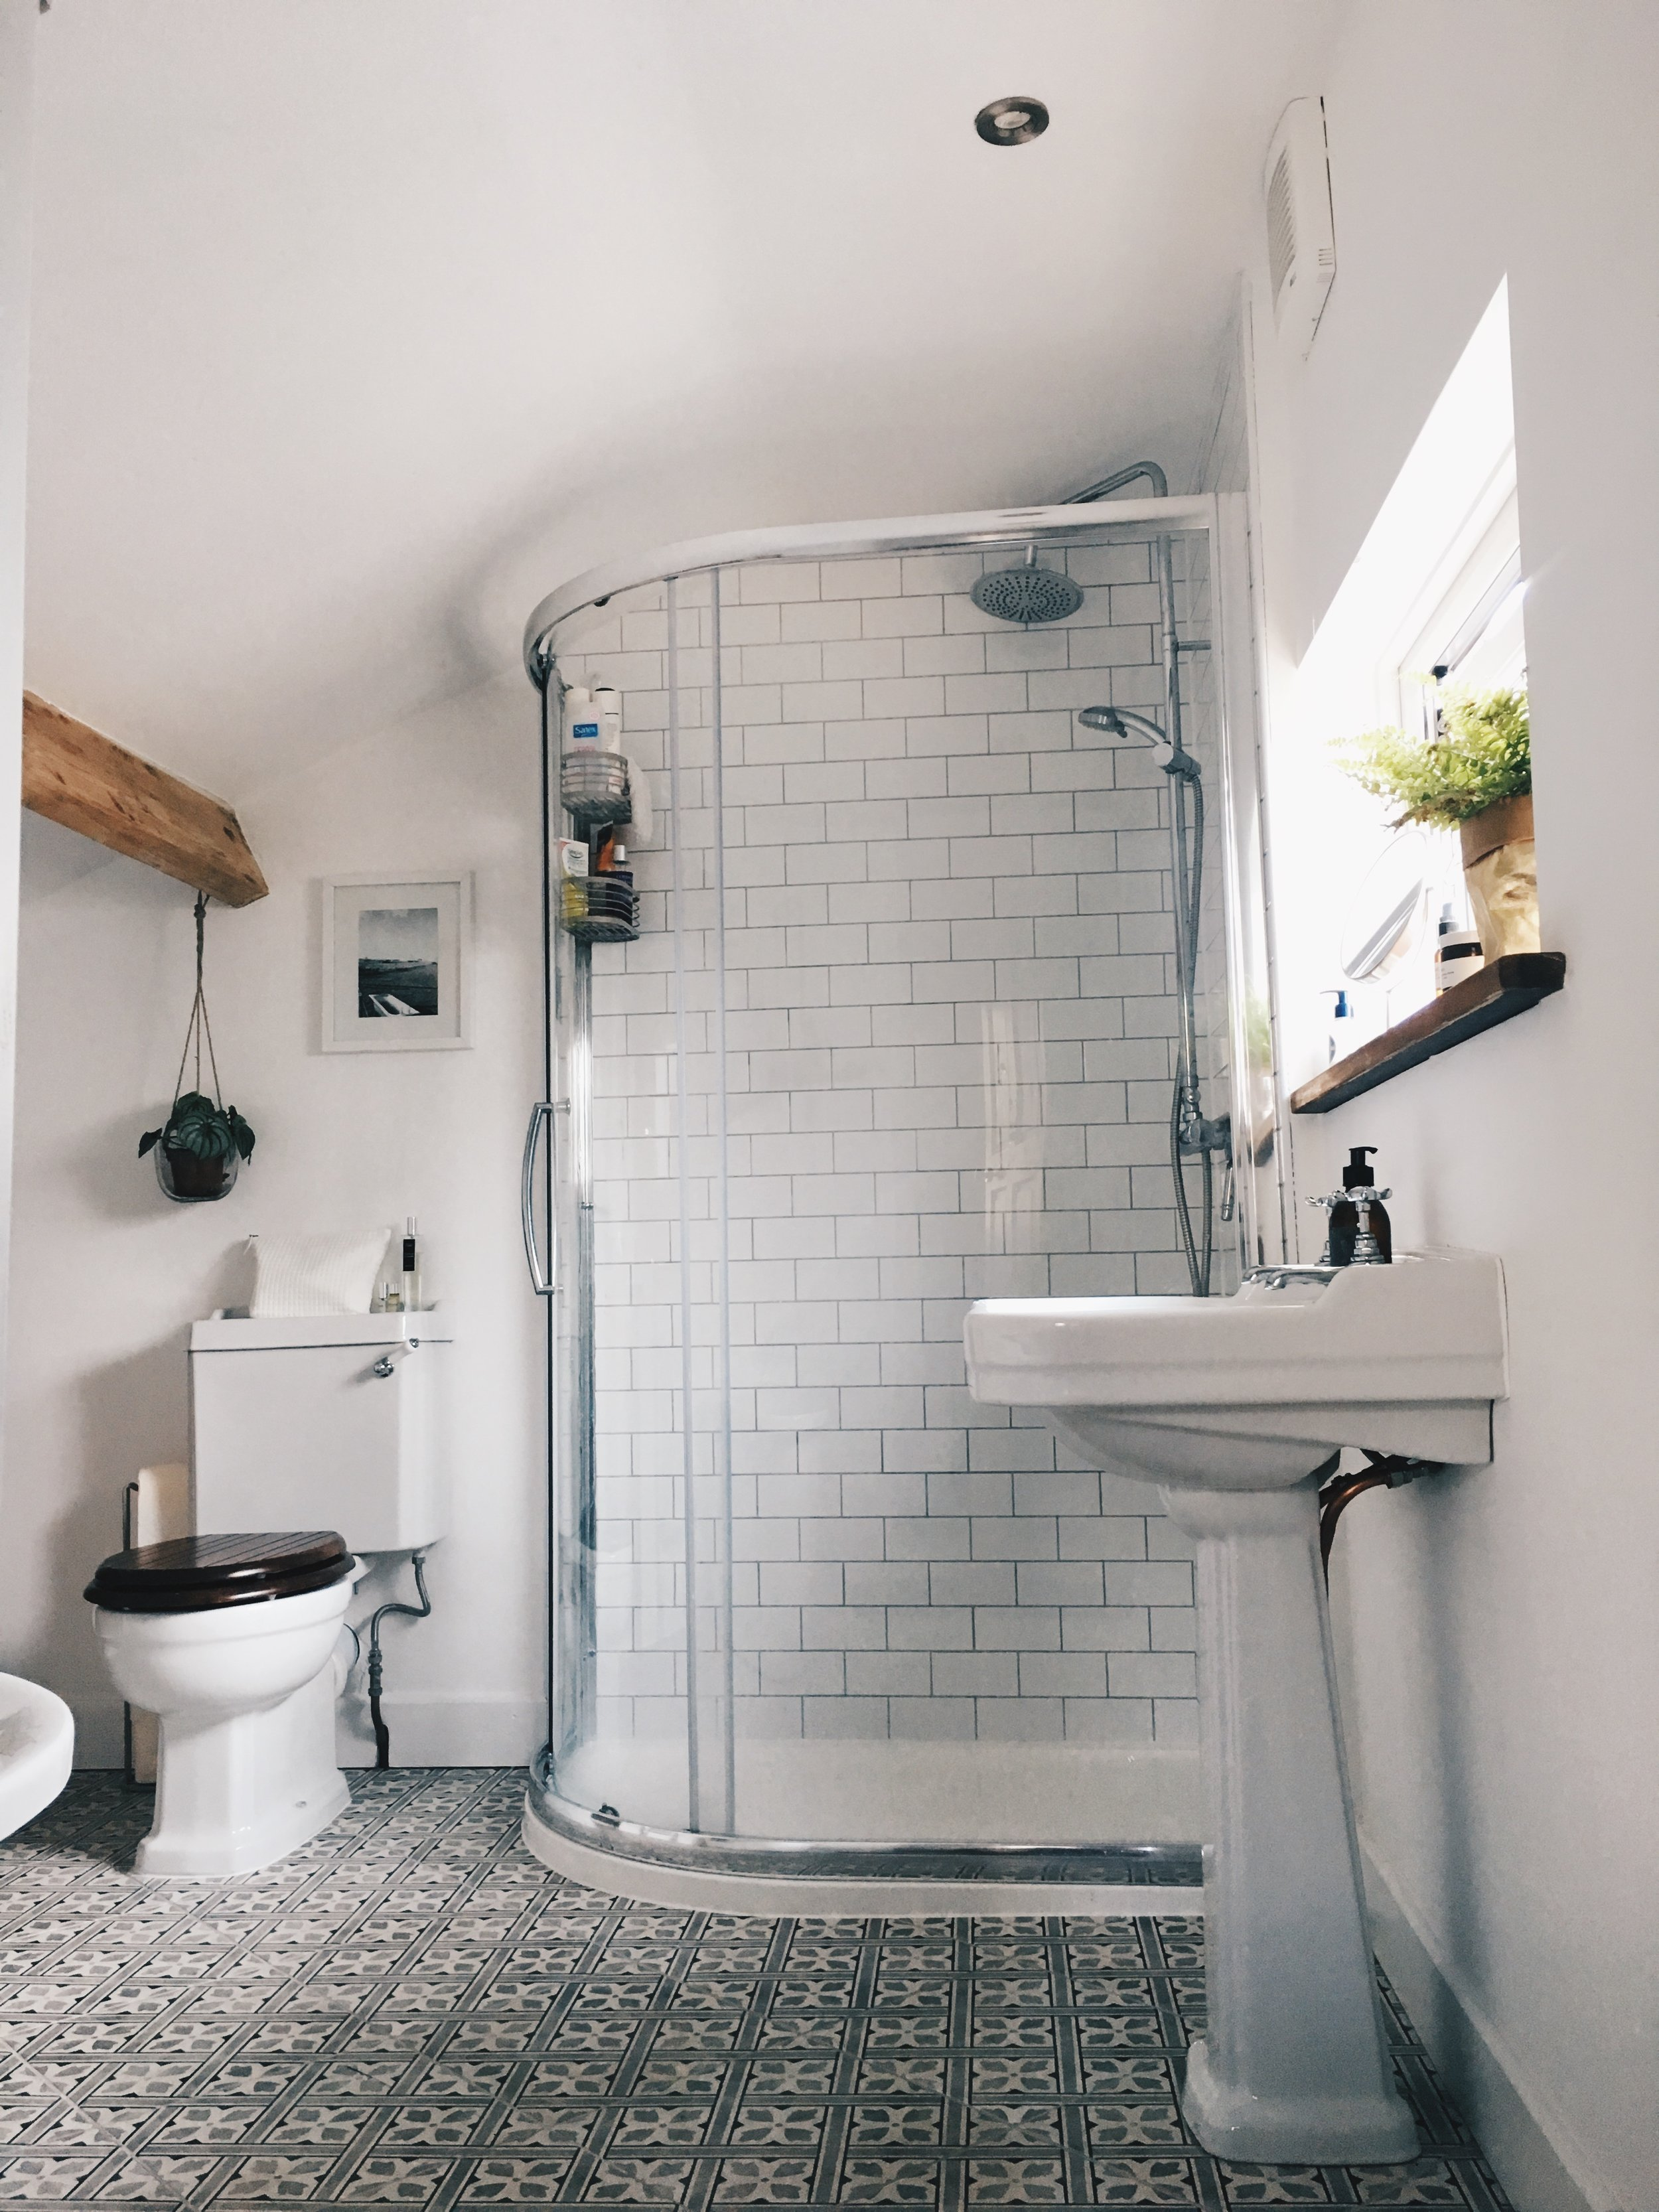 Choosing a clear and curved cubicle has made the bathroom feel more spacious and brighter.  We also had a smaller window fitted so that the sink could sit under it.  The window was double the size before and also offered no privacy.